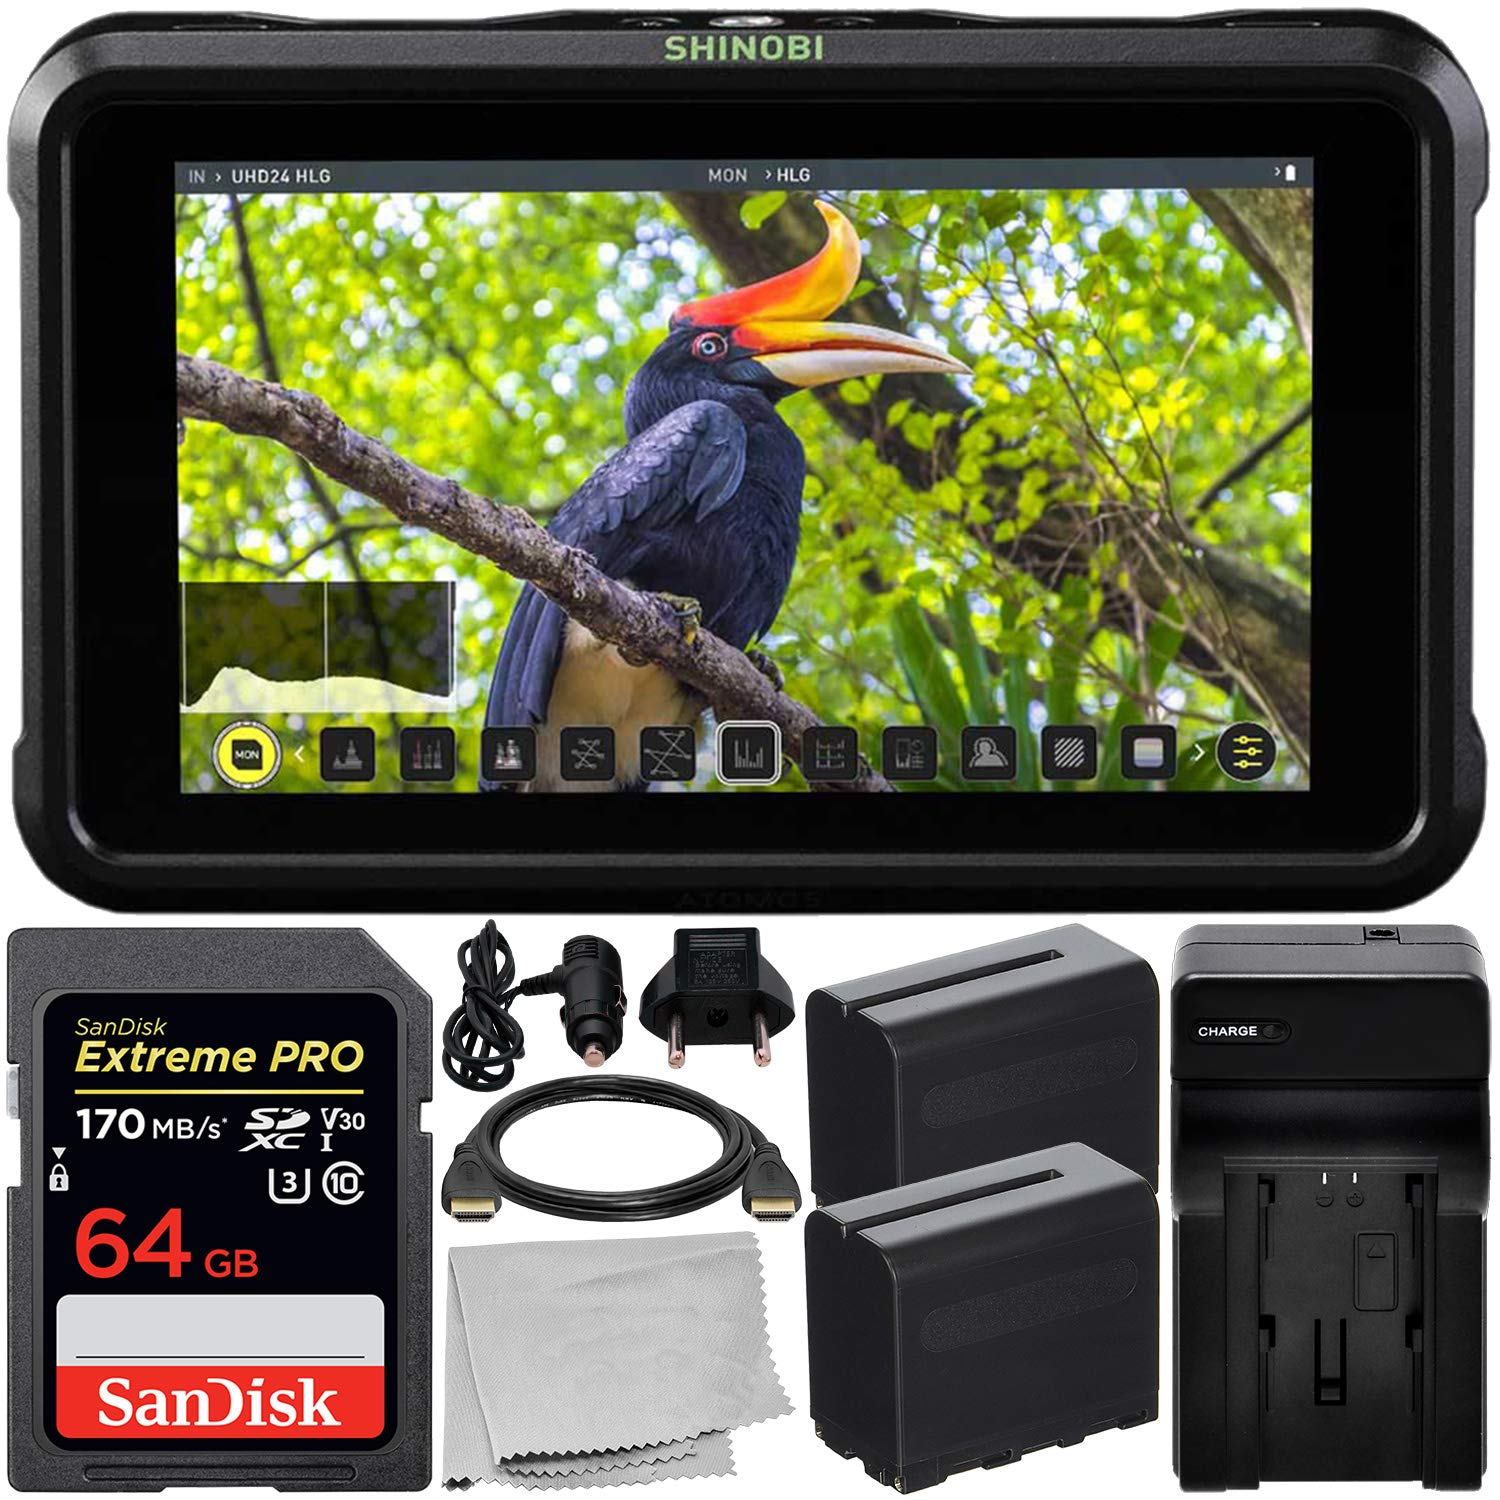 Atomos Shinobi 5.2'' 4K HDMI Monitor with Essential Accessory Bundle - Includes: SanDisk Extreme PRO 64GB SDXC Memory Card + 2x Extended Life NP-F970 L-Series Batteries with Charger + HDMI Cable + MORE